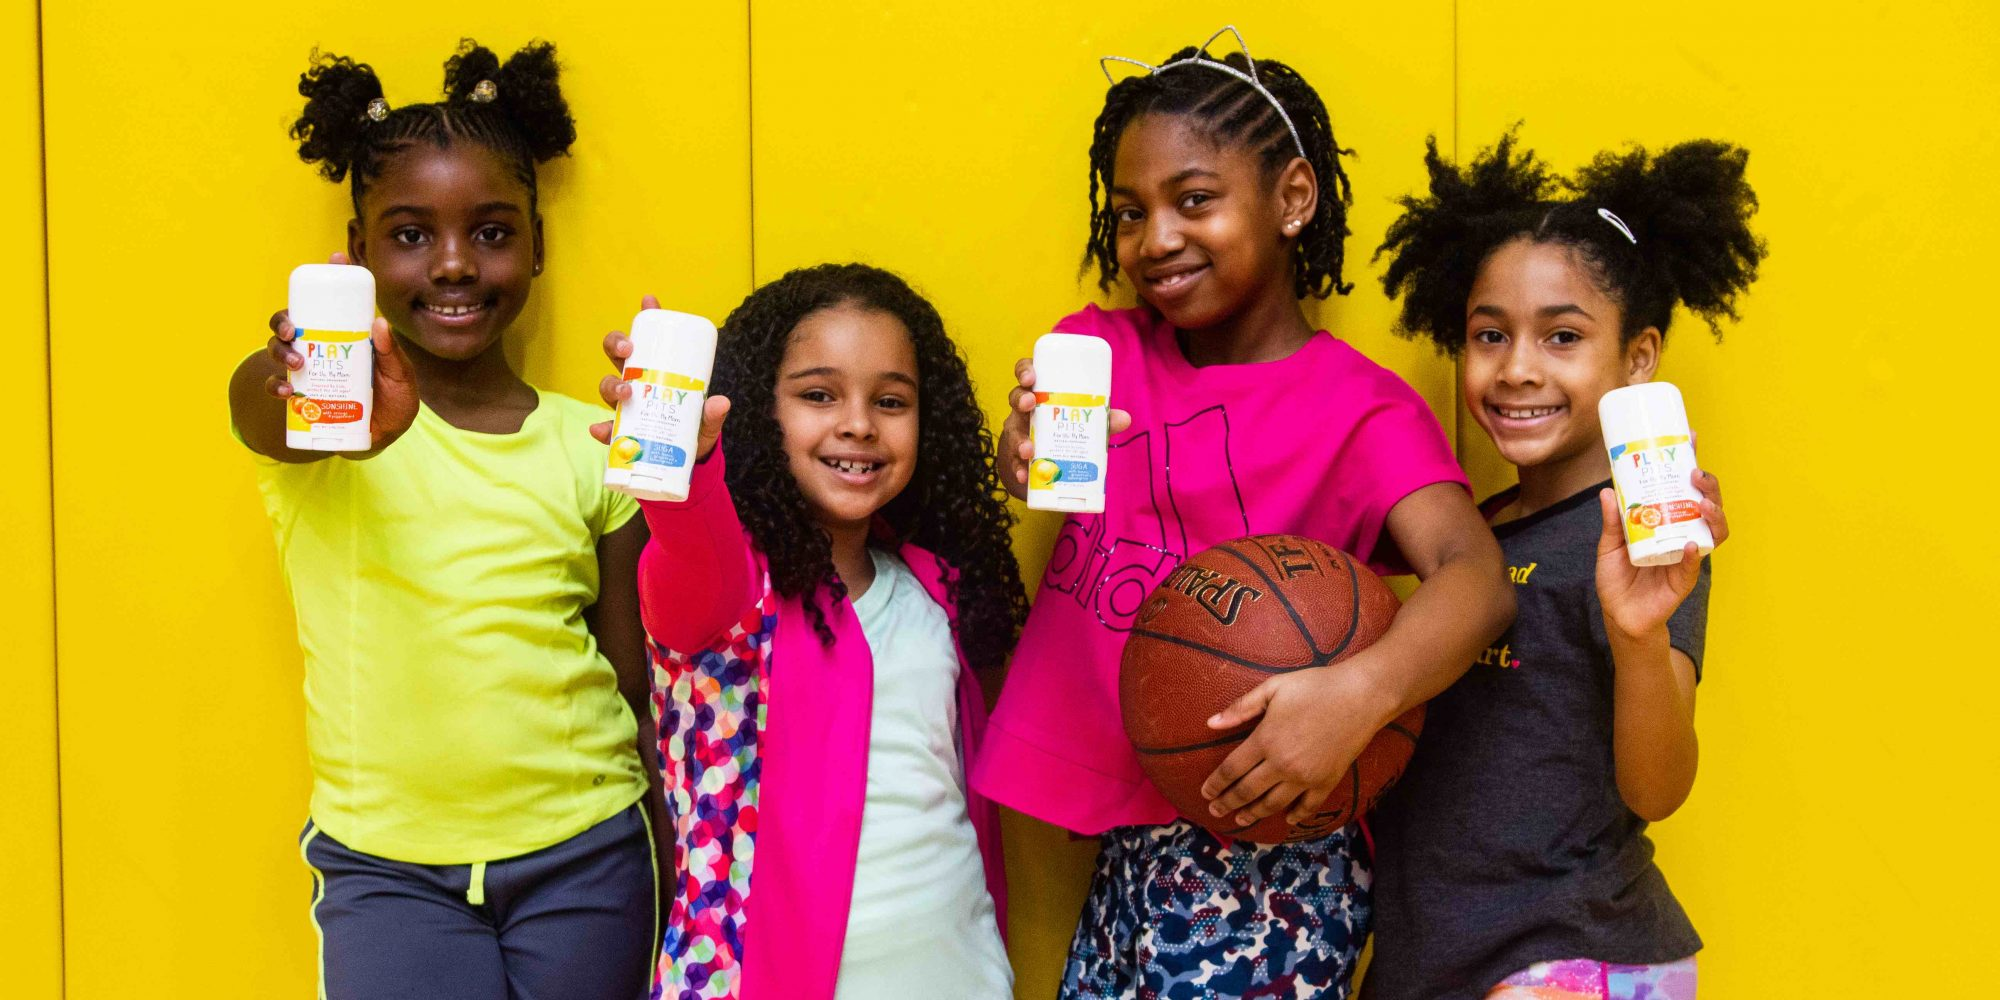 """Solve A Problem That Other Products Are Not Solving"": Play Pits Offers Natural Deodorants For Kids"